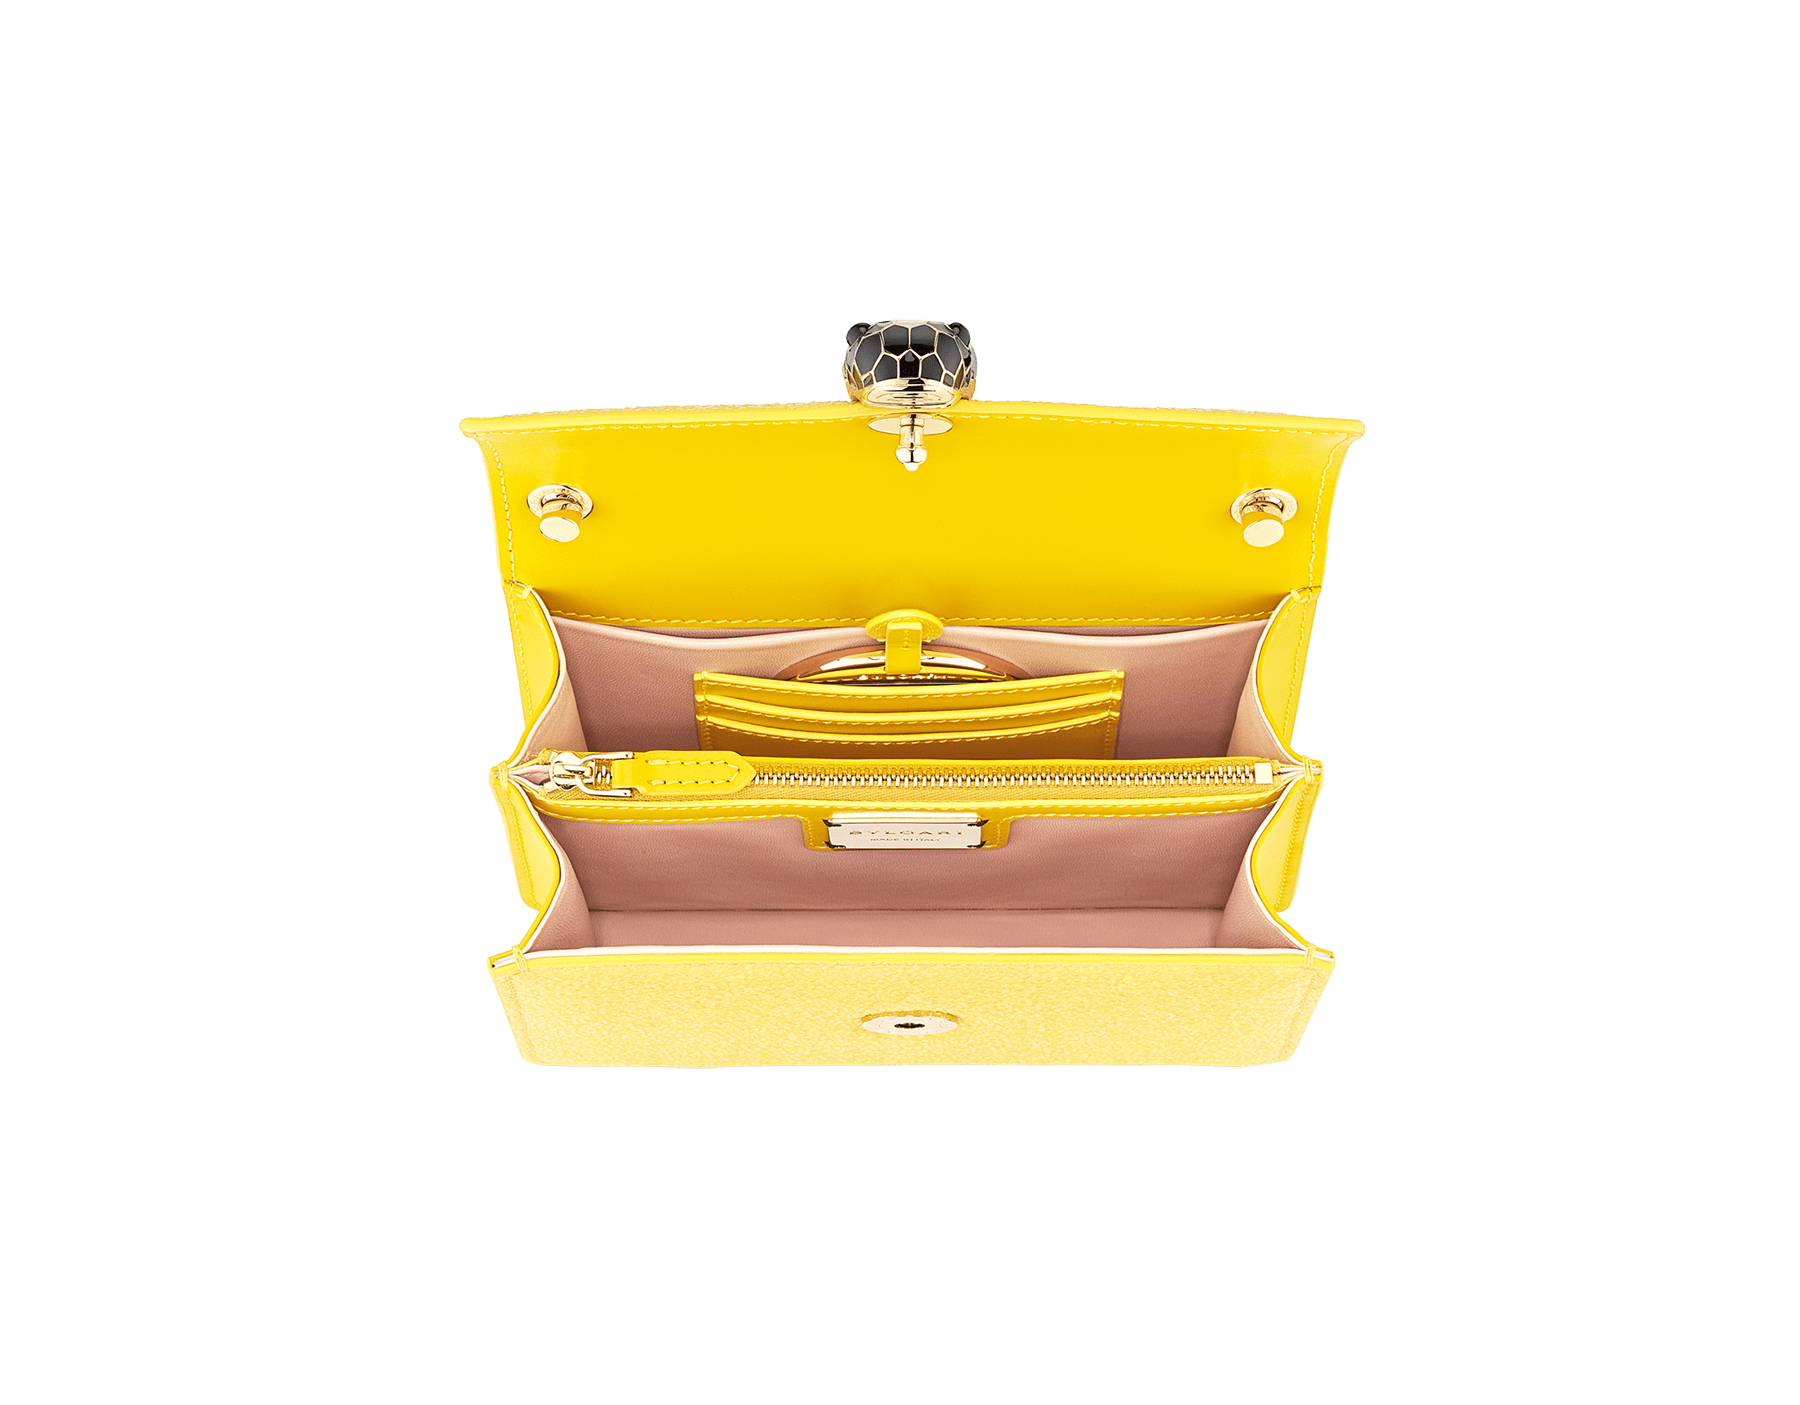 """Serpenti Forever"" crossbody bag in daisy topaz full galuchat skin body and daisy topaz calf leather sides. Iconic snakehead closure in light gold plated brass enriched with black and white enamel and black onyx eyes. 290242 image 4"